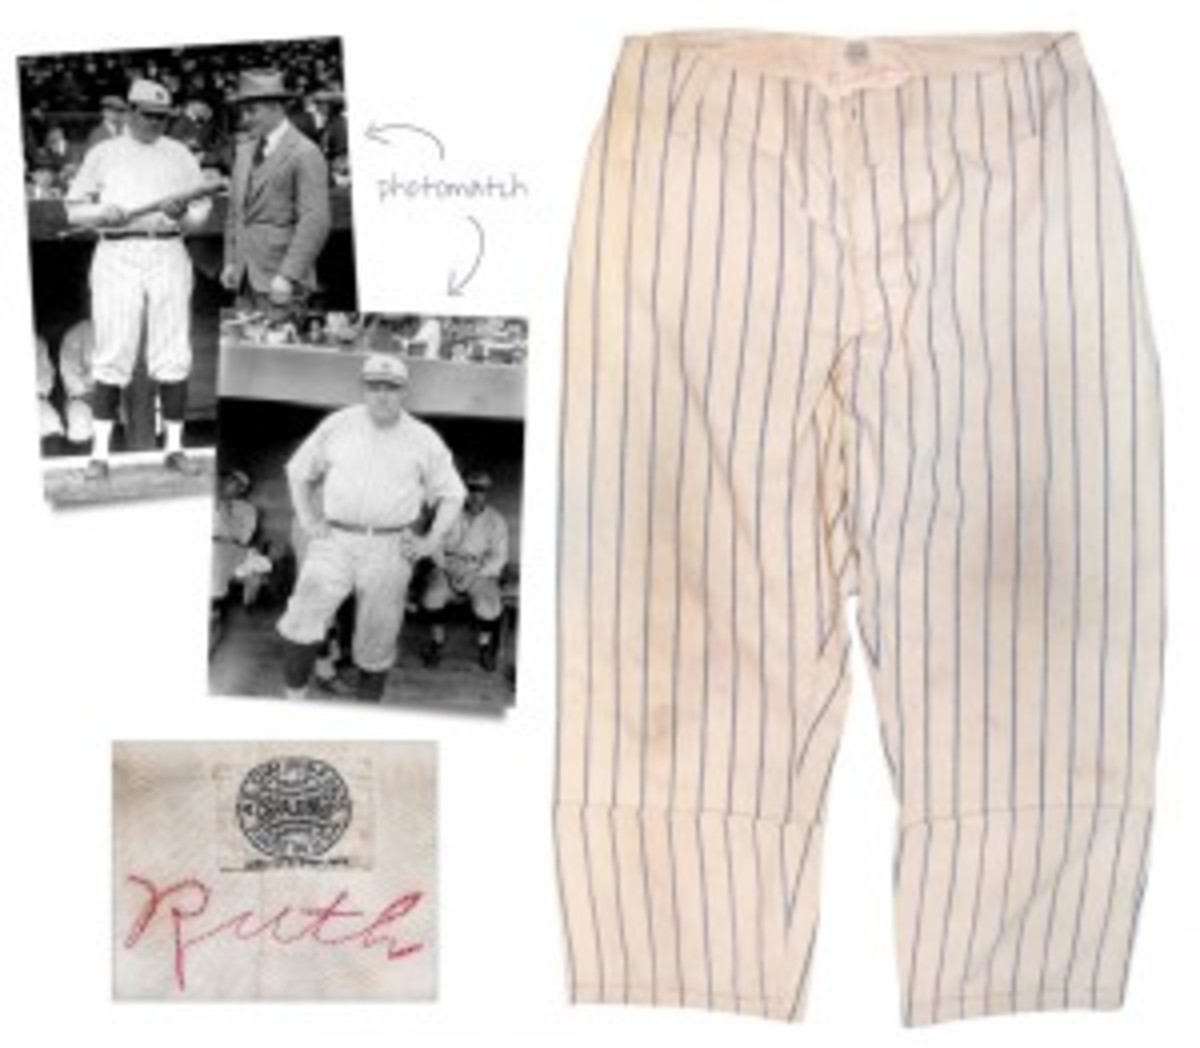 Babe Ruth pinstripe pants dating to Opening Day, 1921